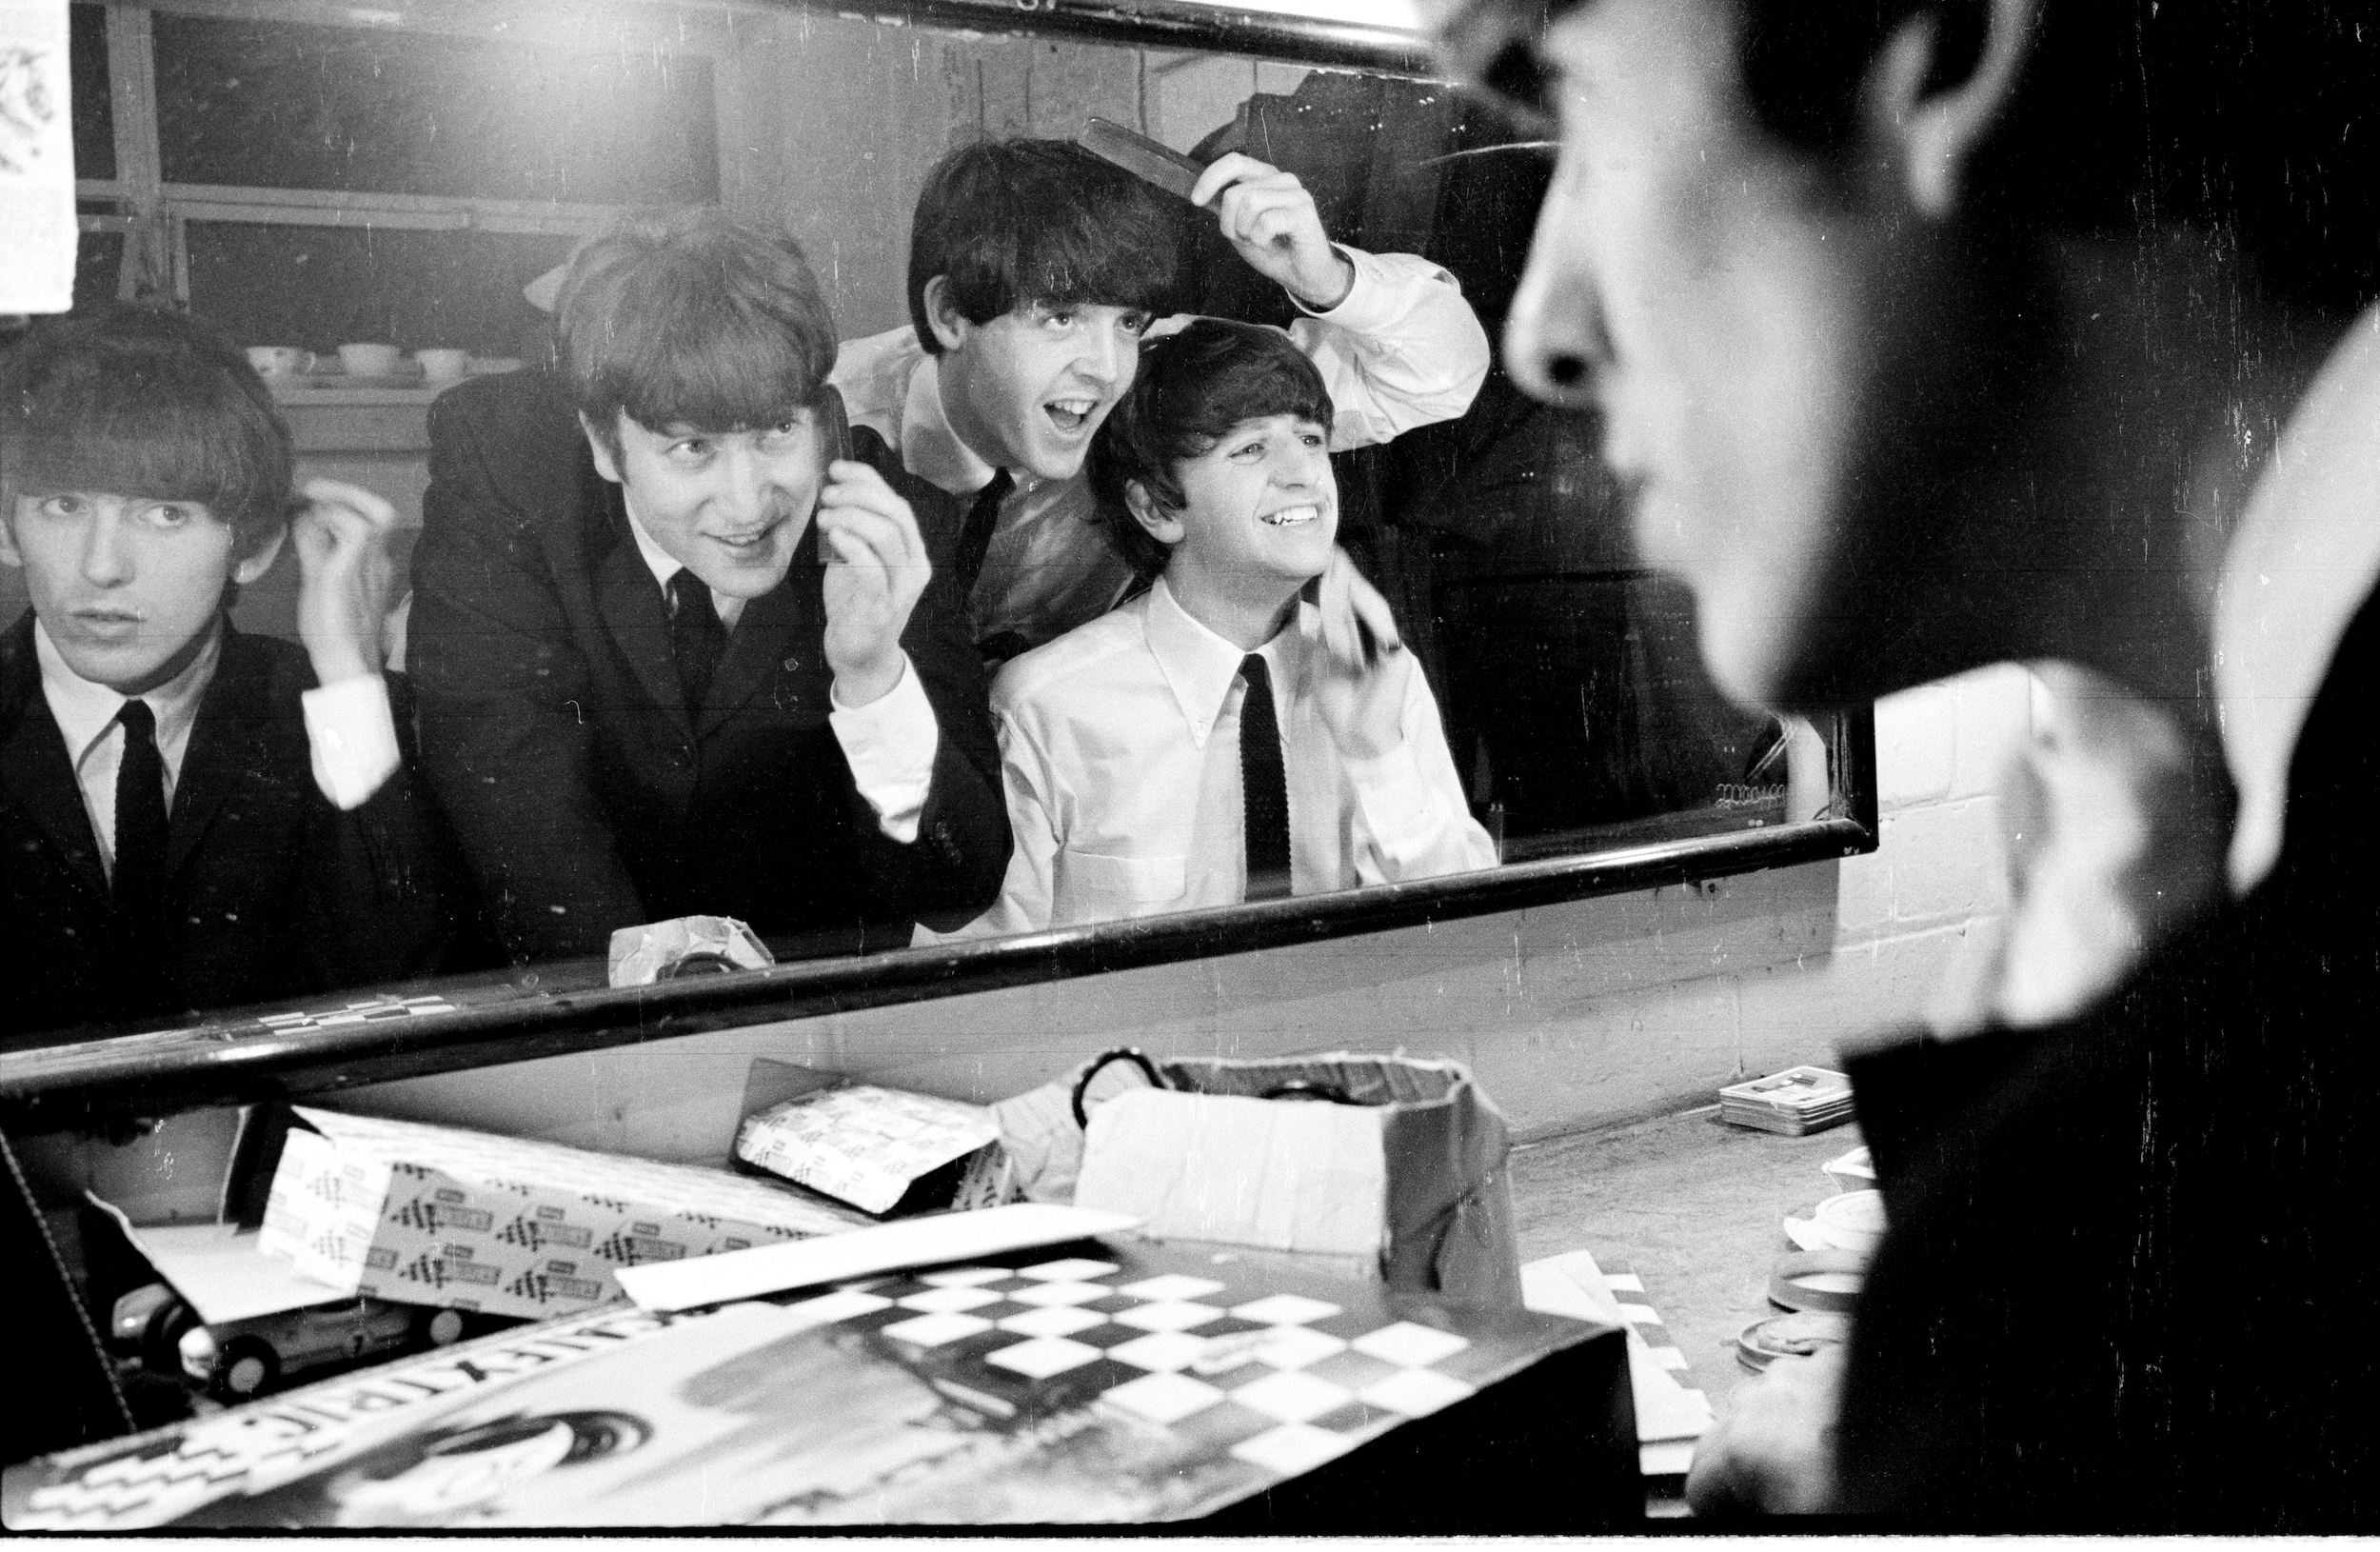 The Beatles backstage at Coventry Theatre, November 1963, courtesy Apple Corps Ltd.